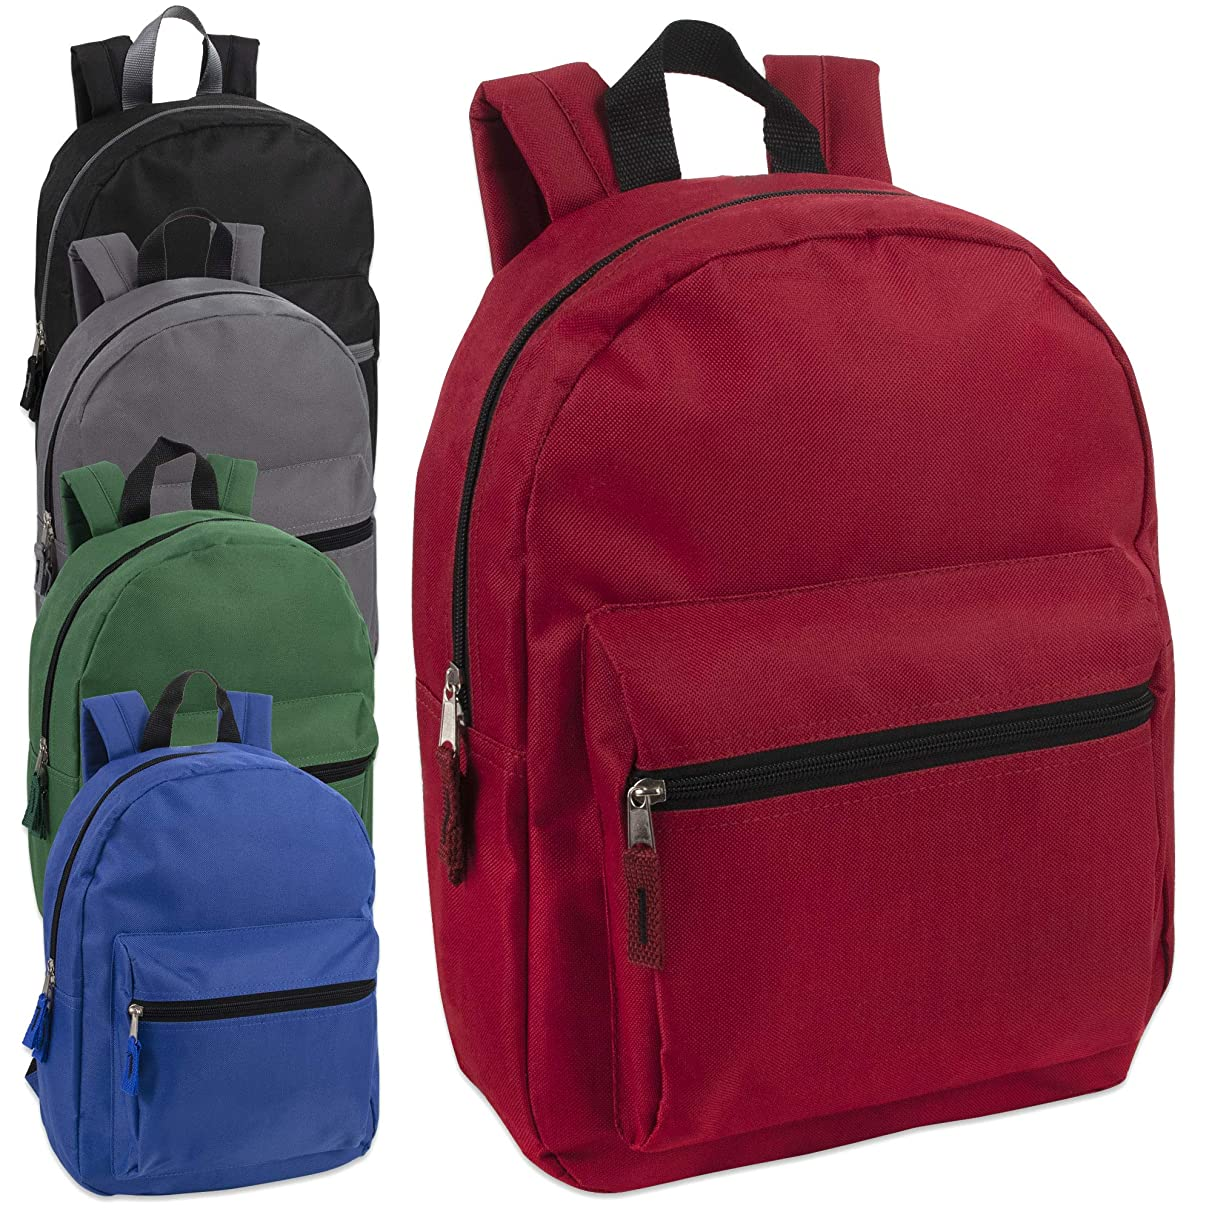 15 Inch Solid Backpacks For Kids With Padded Straps, Wholesale Bulk Case Pack Of 24 (5 Color Assortment)